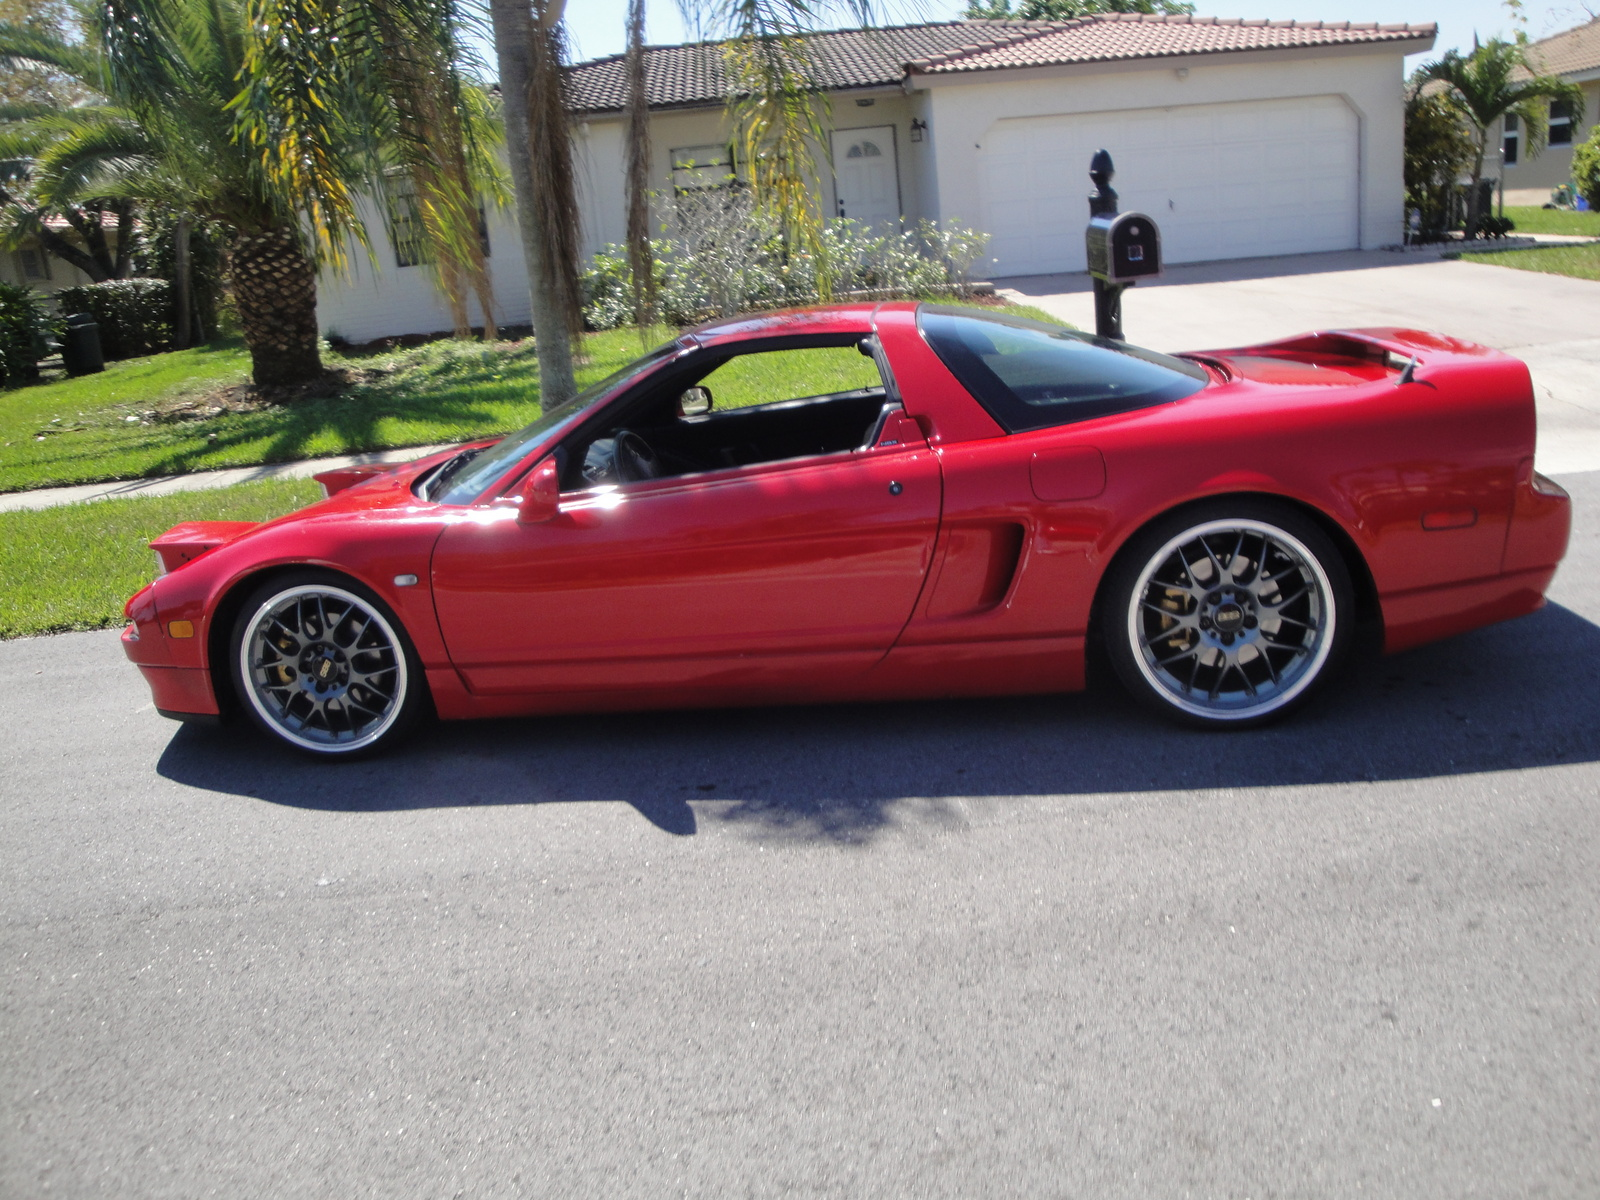 2005 Acura NSX 2 Dr STD Coupe picture, exterior